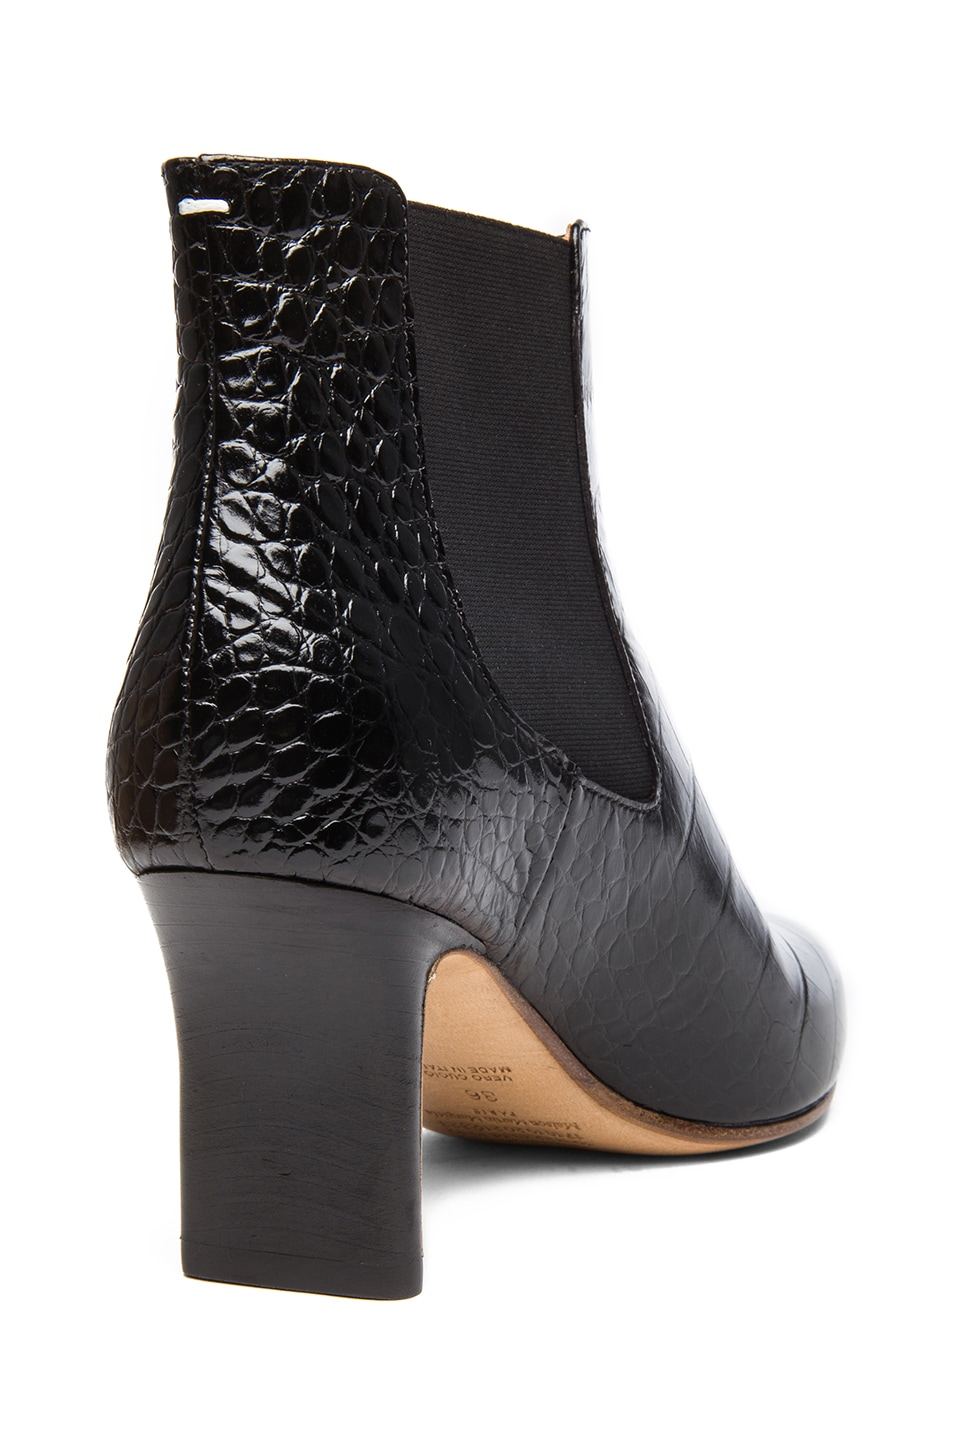 Image 3 of Maison Margiela Croc Embossed Leather Defile Booties in Black